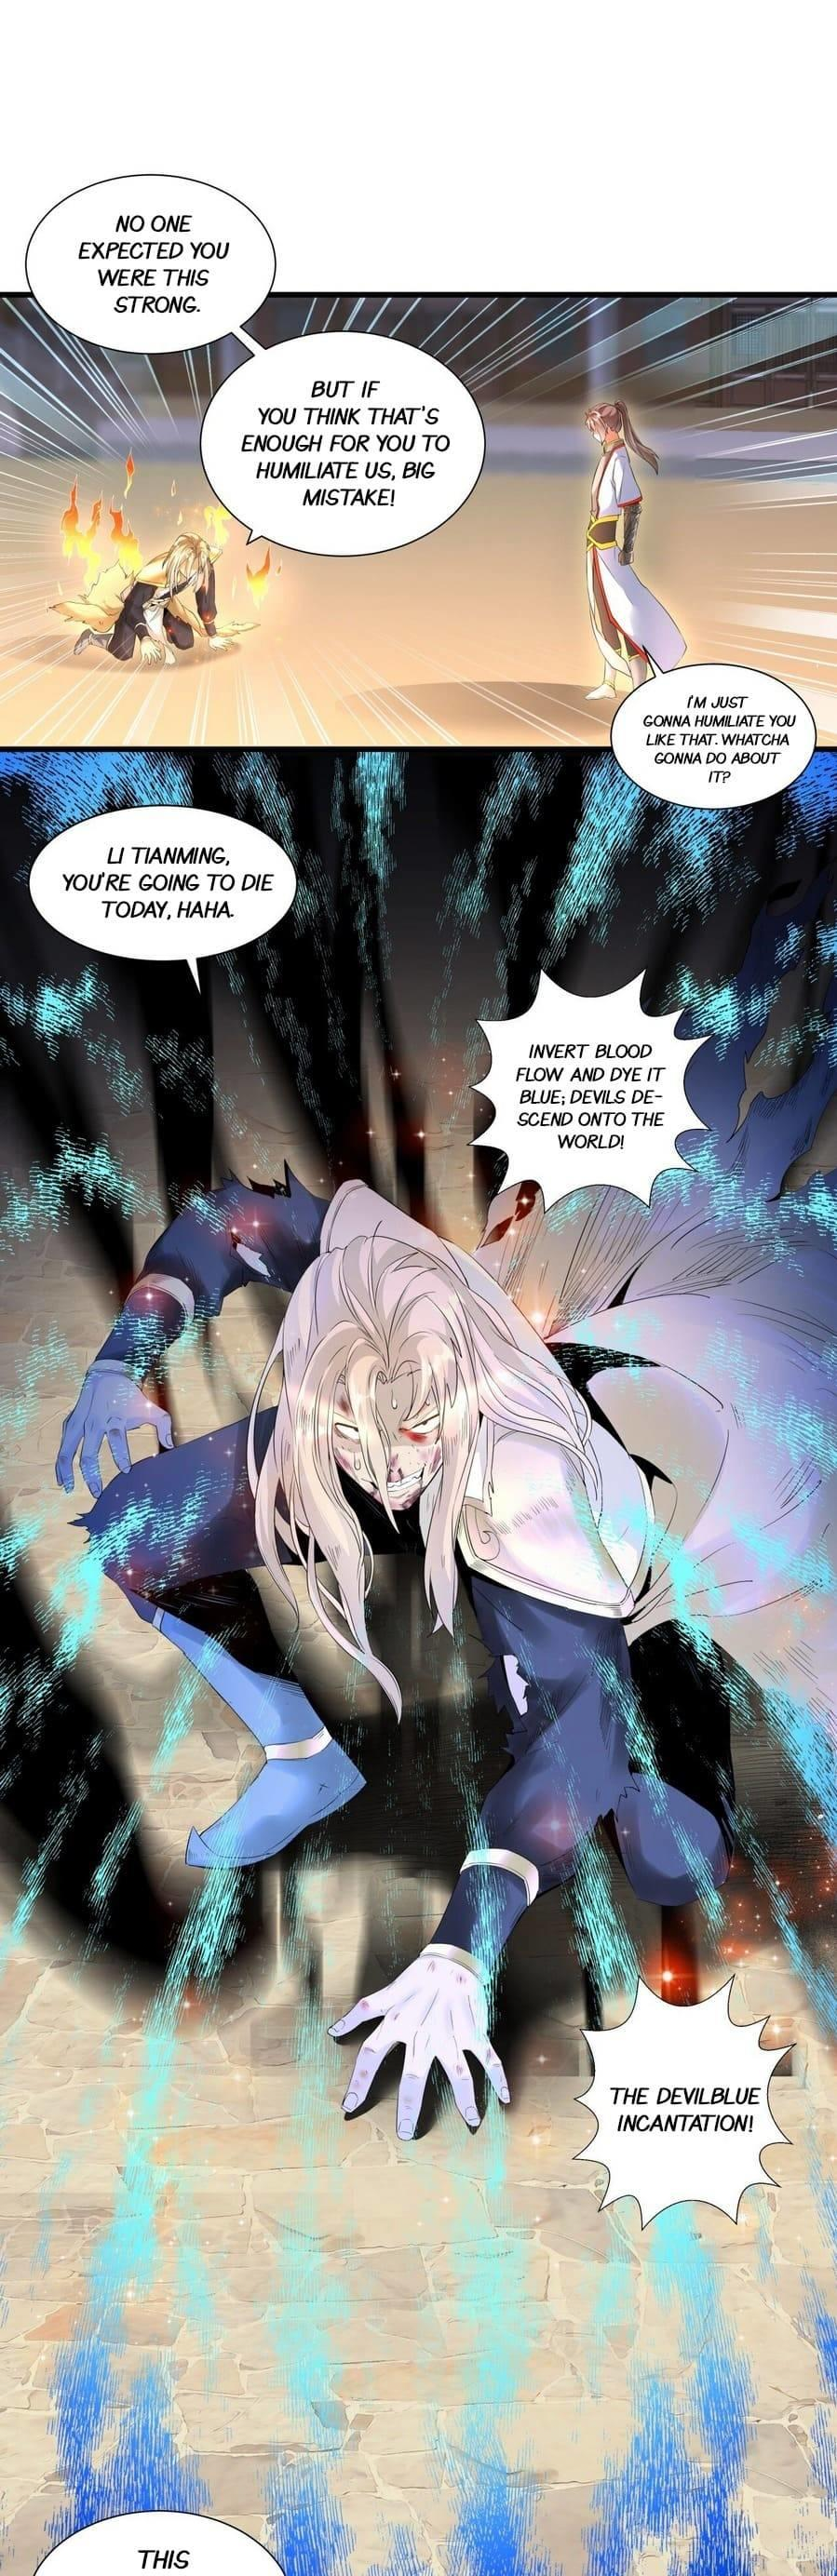 Beastmaster Of The Ages Chapter 37 page 19 - Mangakakalots.com